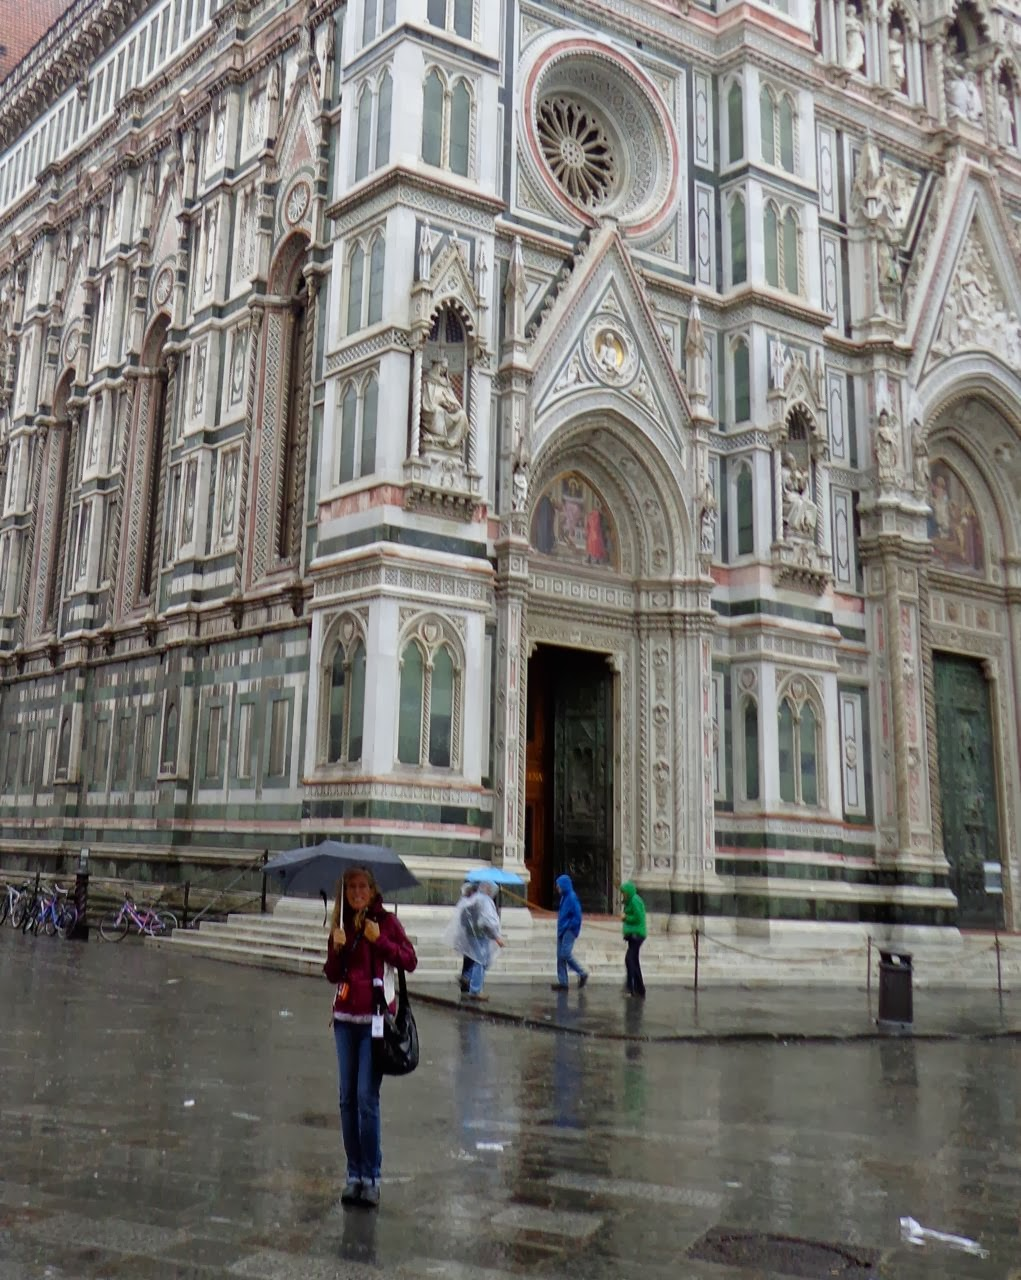 Watergeeks filtered water bottle review the green living guide - Check Out The Photo Of Cog Tester Patricia Crawford Enjoying A First Look At The Renaissance Architectural Masterpiece Il Duomo Di Firenze 1436 Ad